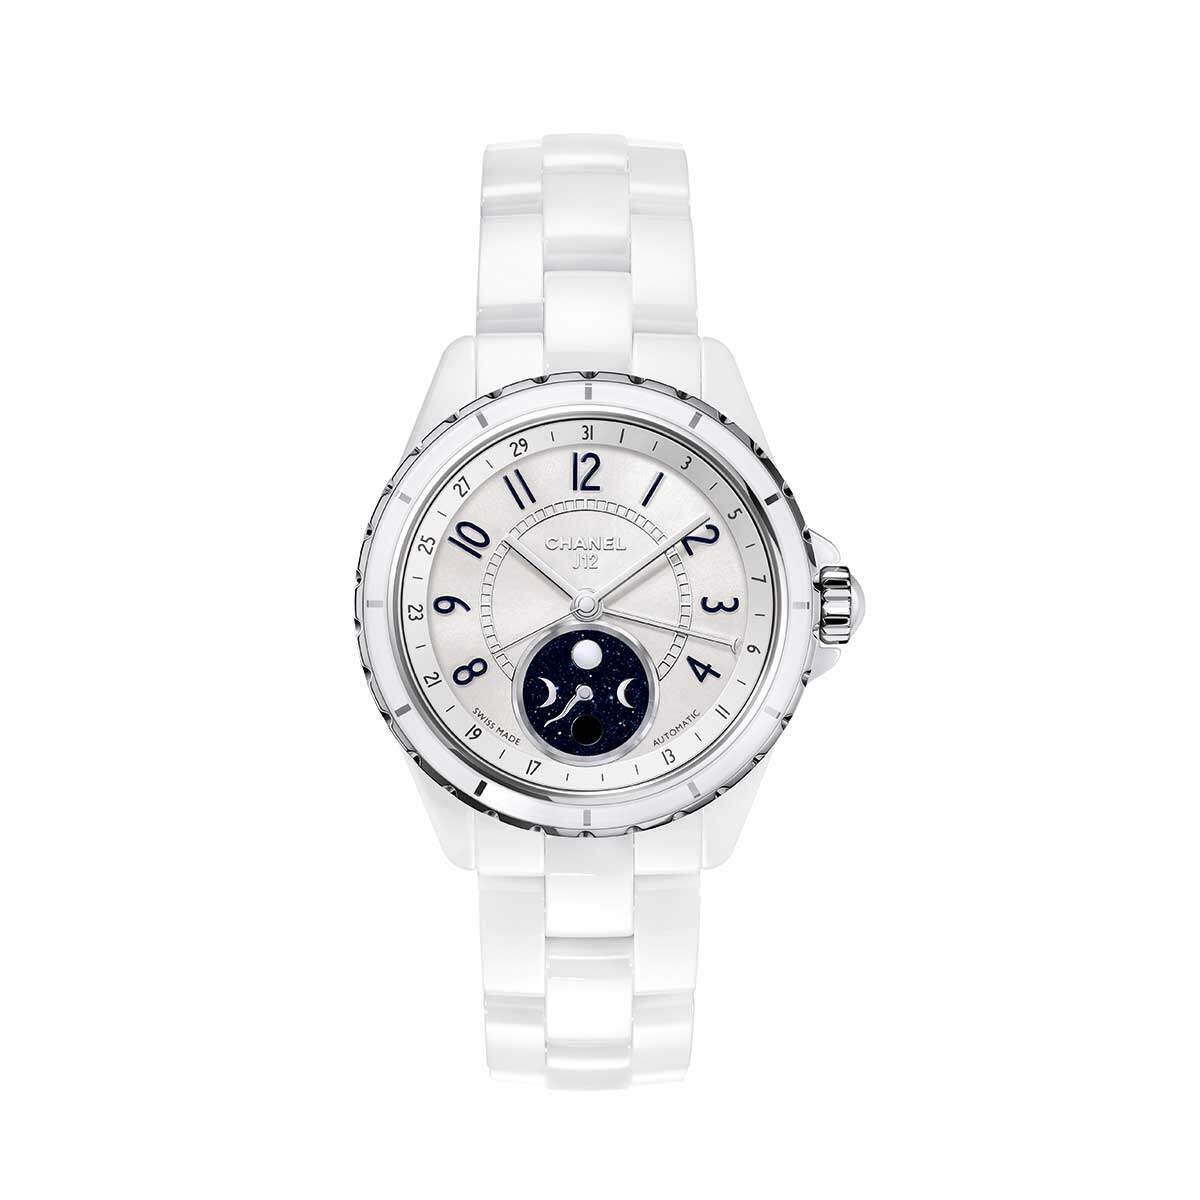 J12 Moonphase